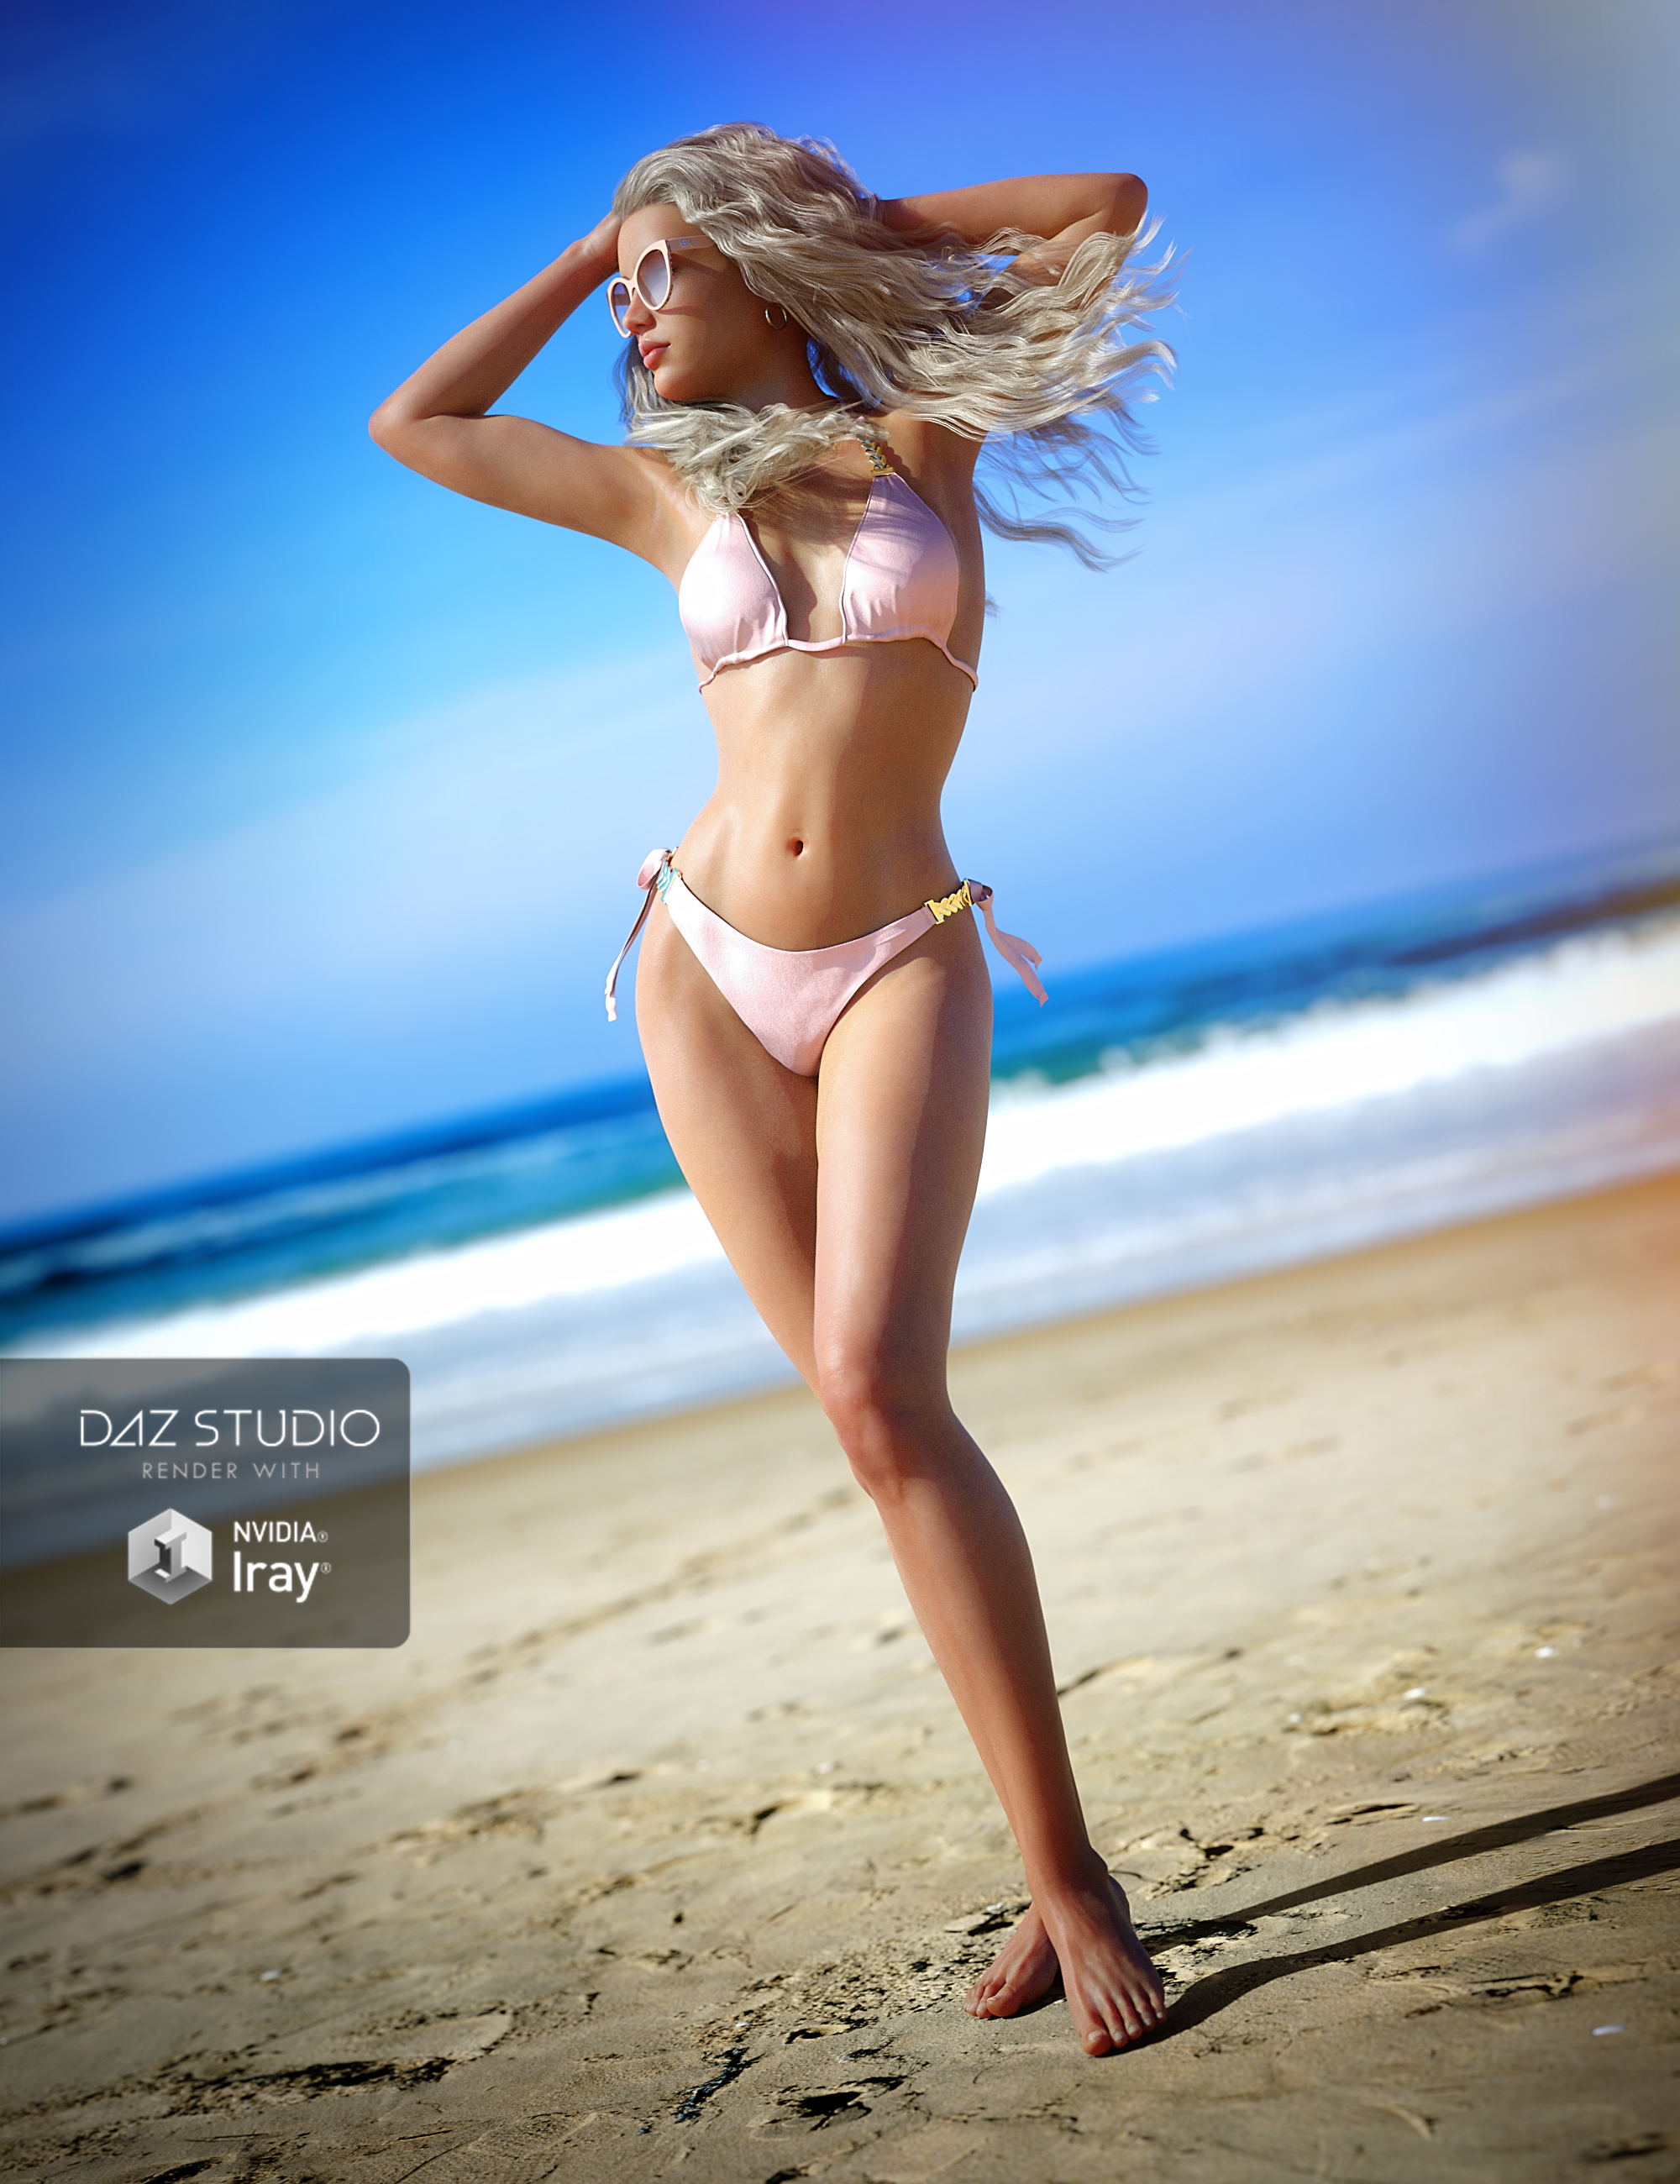 UltraHD IRAY HDRI With DOF - Sunny Beaches Pack 1 by: Cake OneBob Callawah, 3D Models by Daz 3D